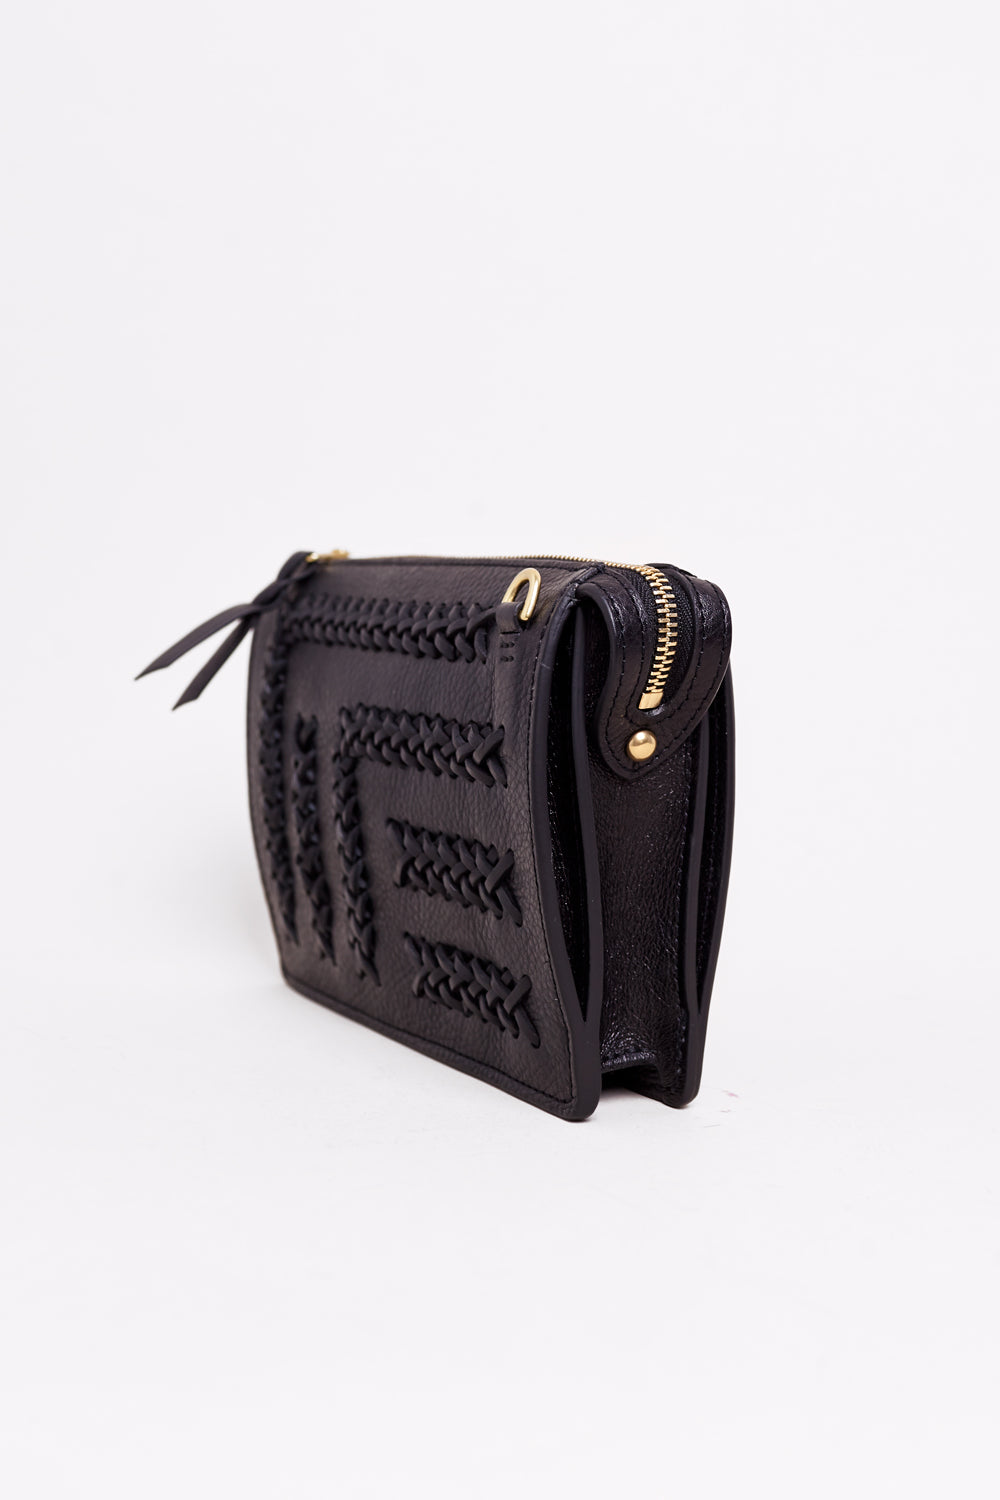 Lotuff Leather The Braided Tripp Crossbody Clutch in Black - Vert & Vogue